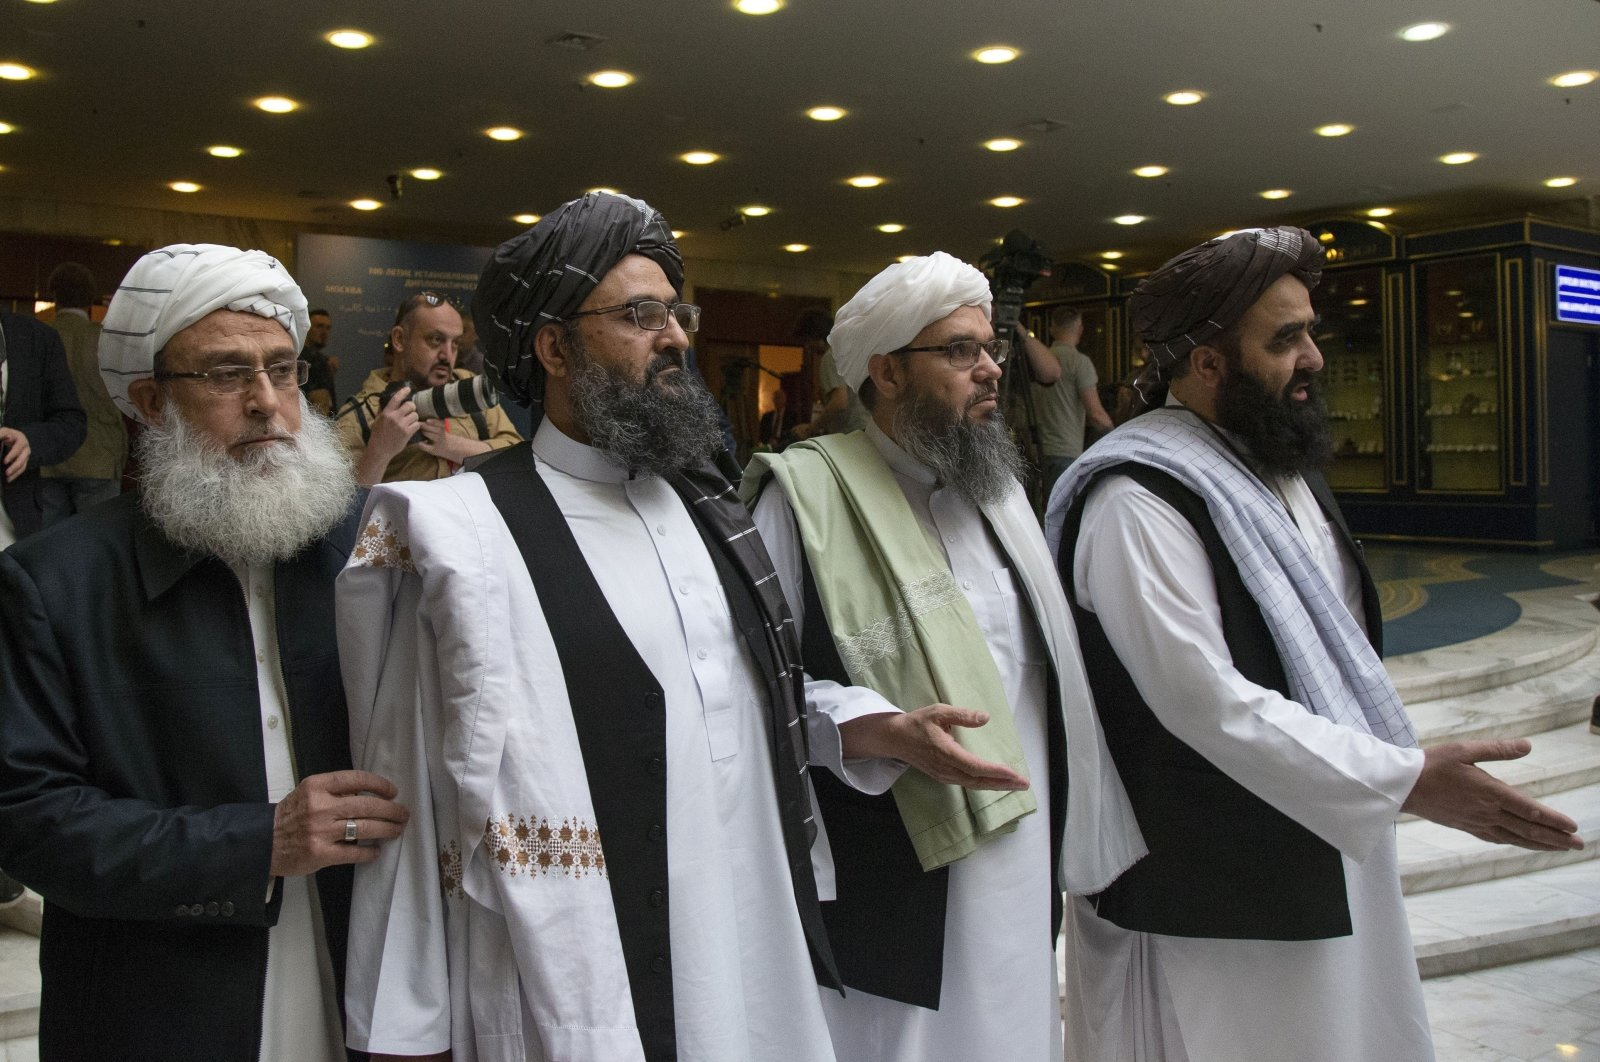 Taliban co-founder Mullah Abdul Ghani Baradar, second left, arrives with other members of the Taliban delegation for talks in Moscow, Russia, May 28, 2019. (AP Photo)